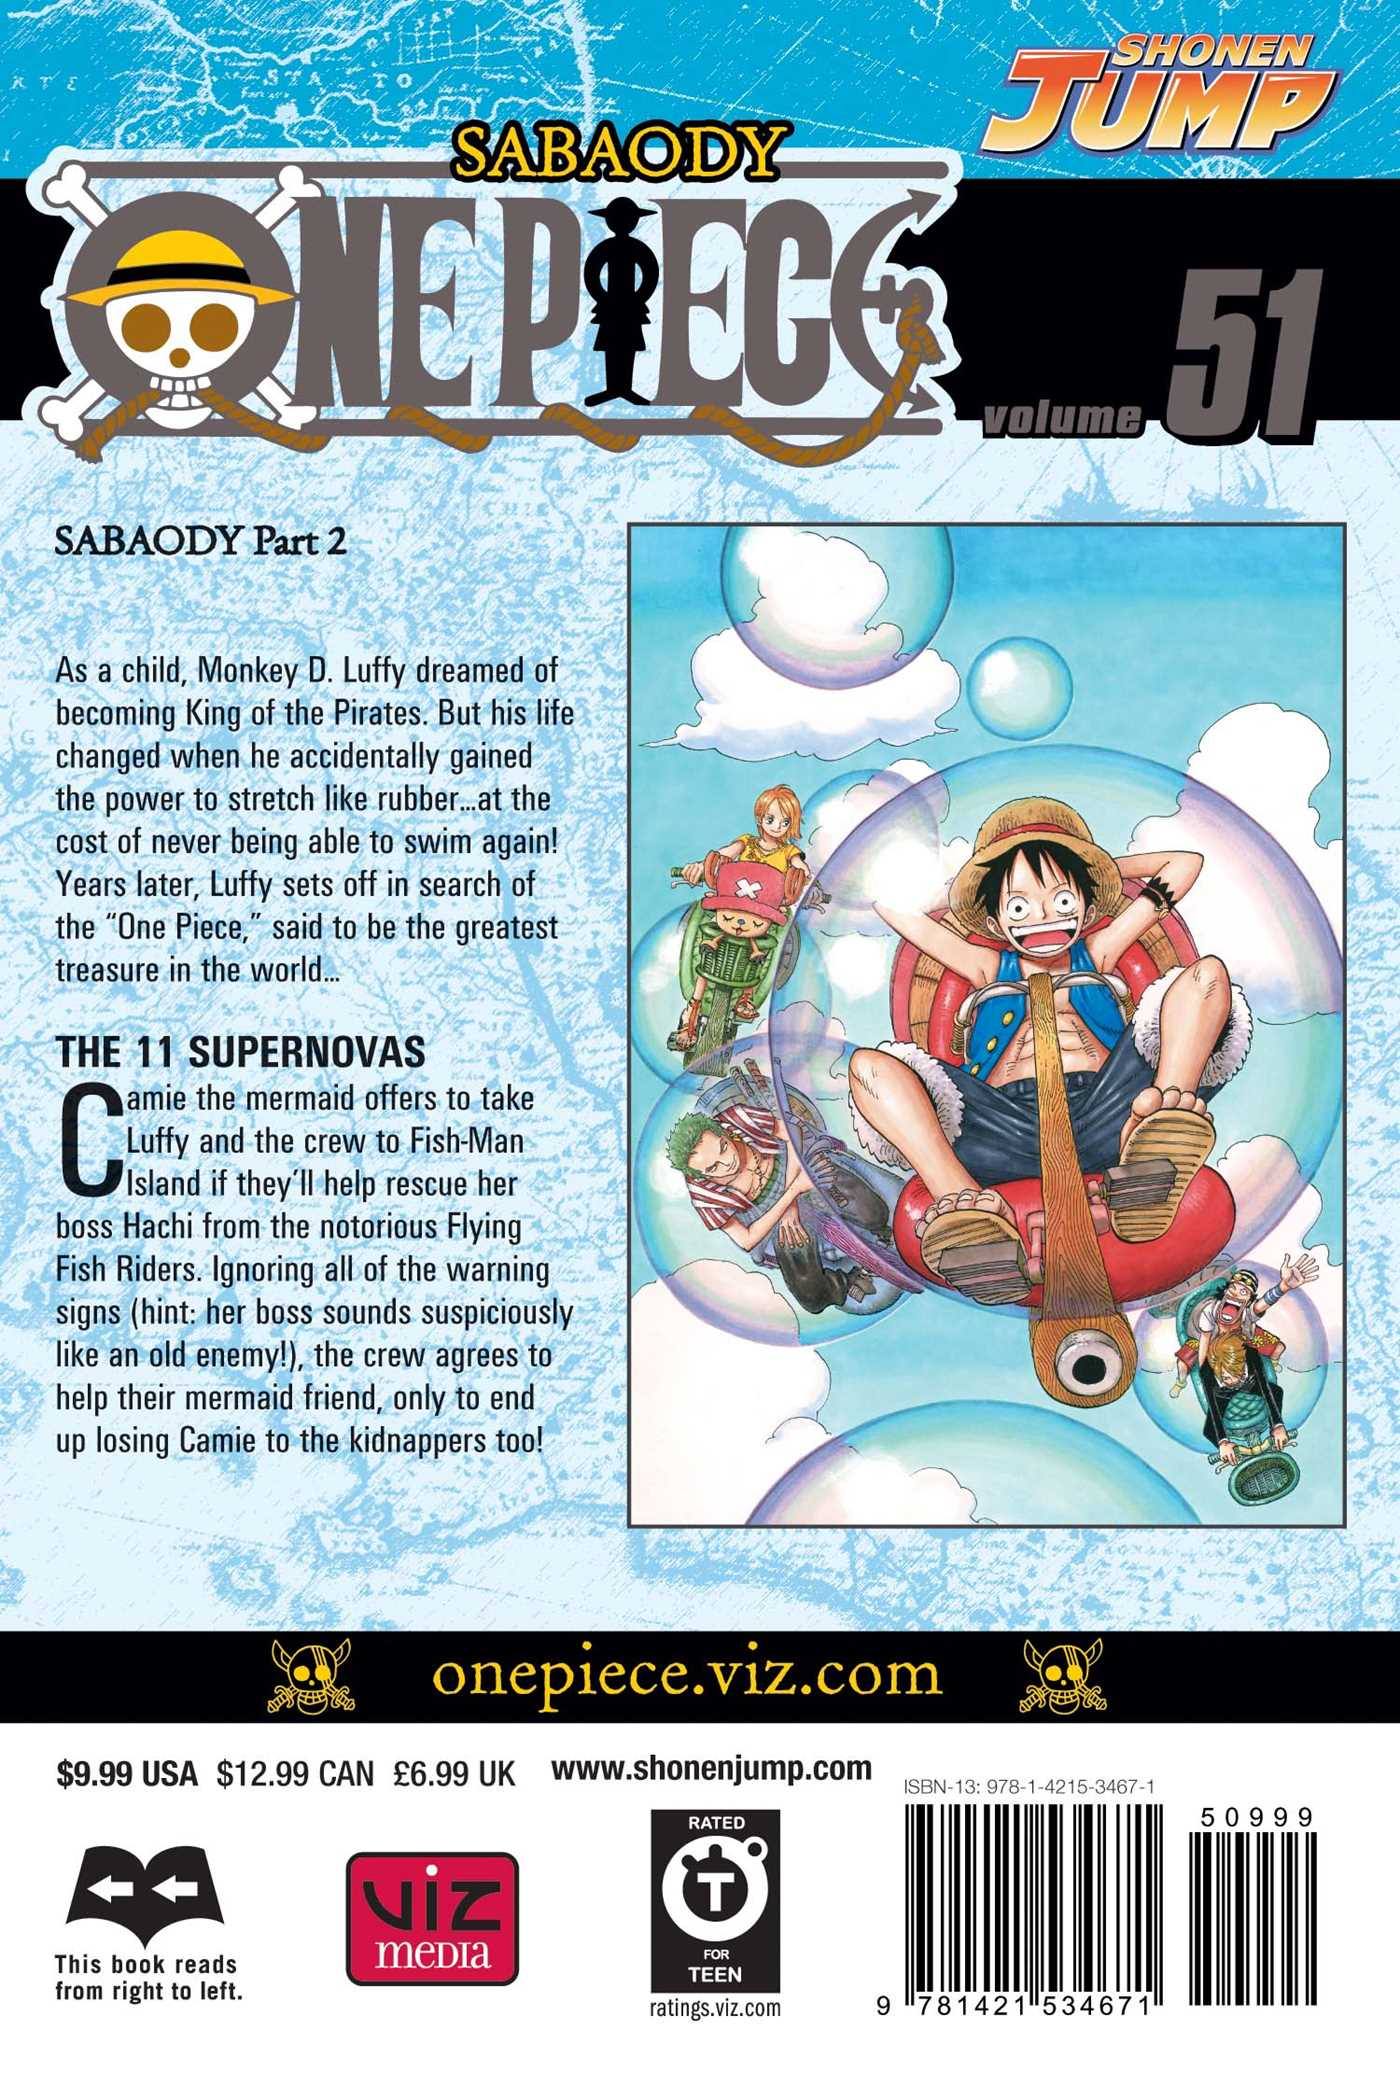 One-piece-vol-51-9781421534671_hr-back